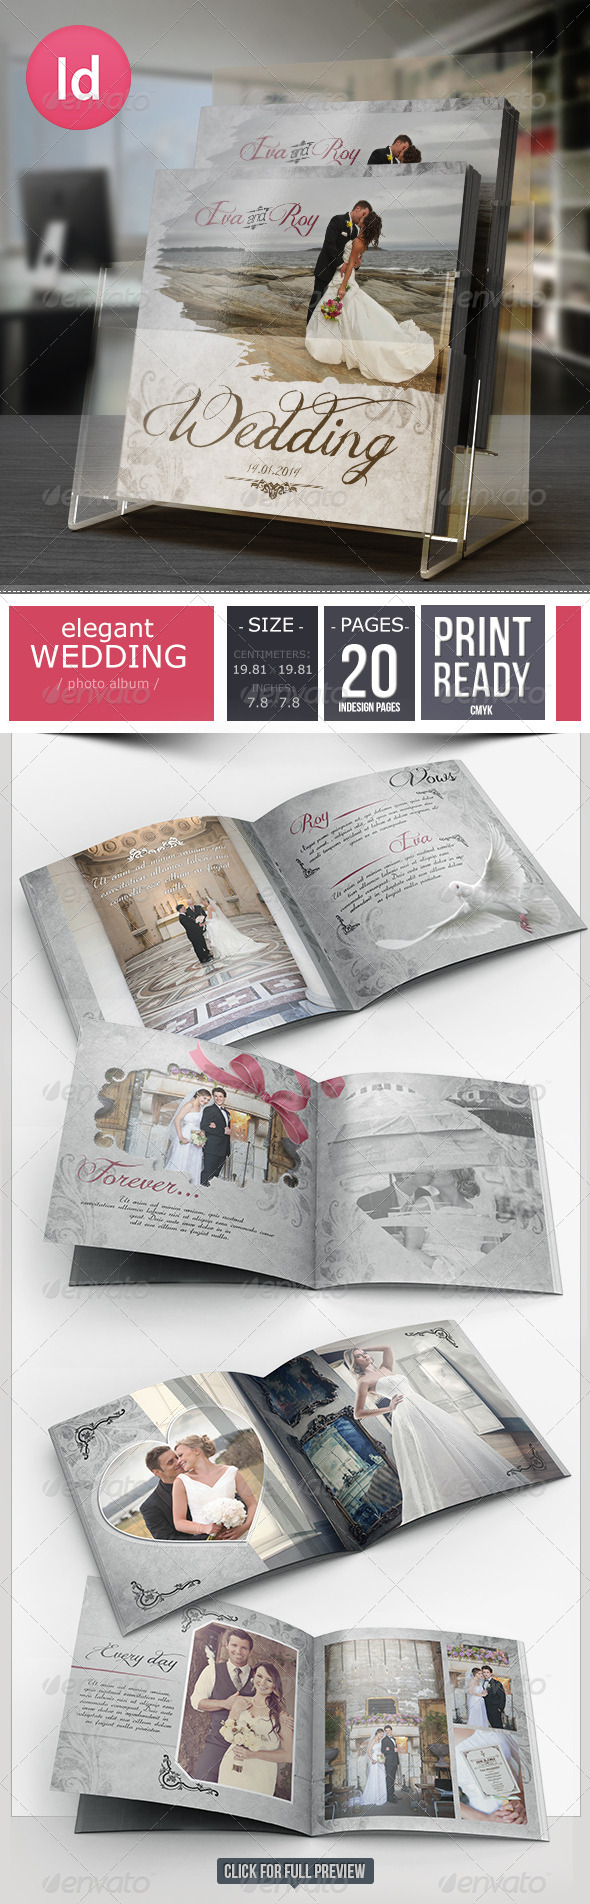 GraphicRiver 20 Pages Elegant Wedding Photo Album 6555058